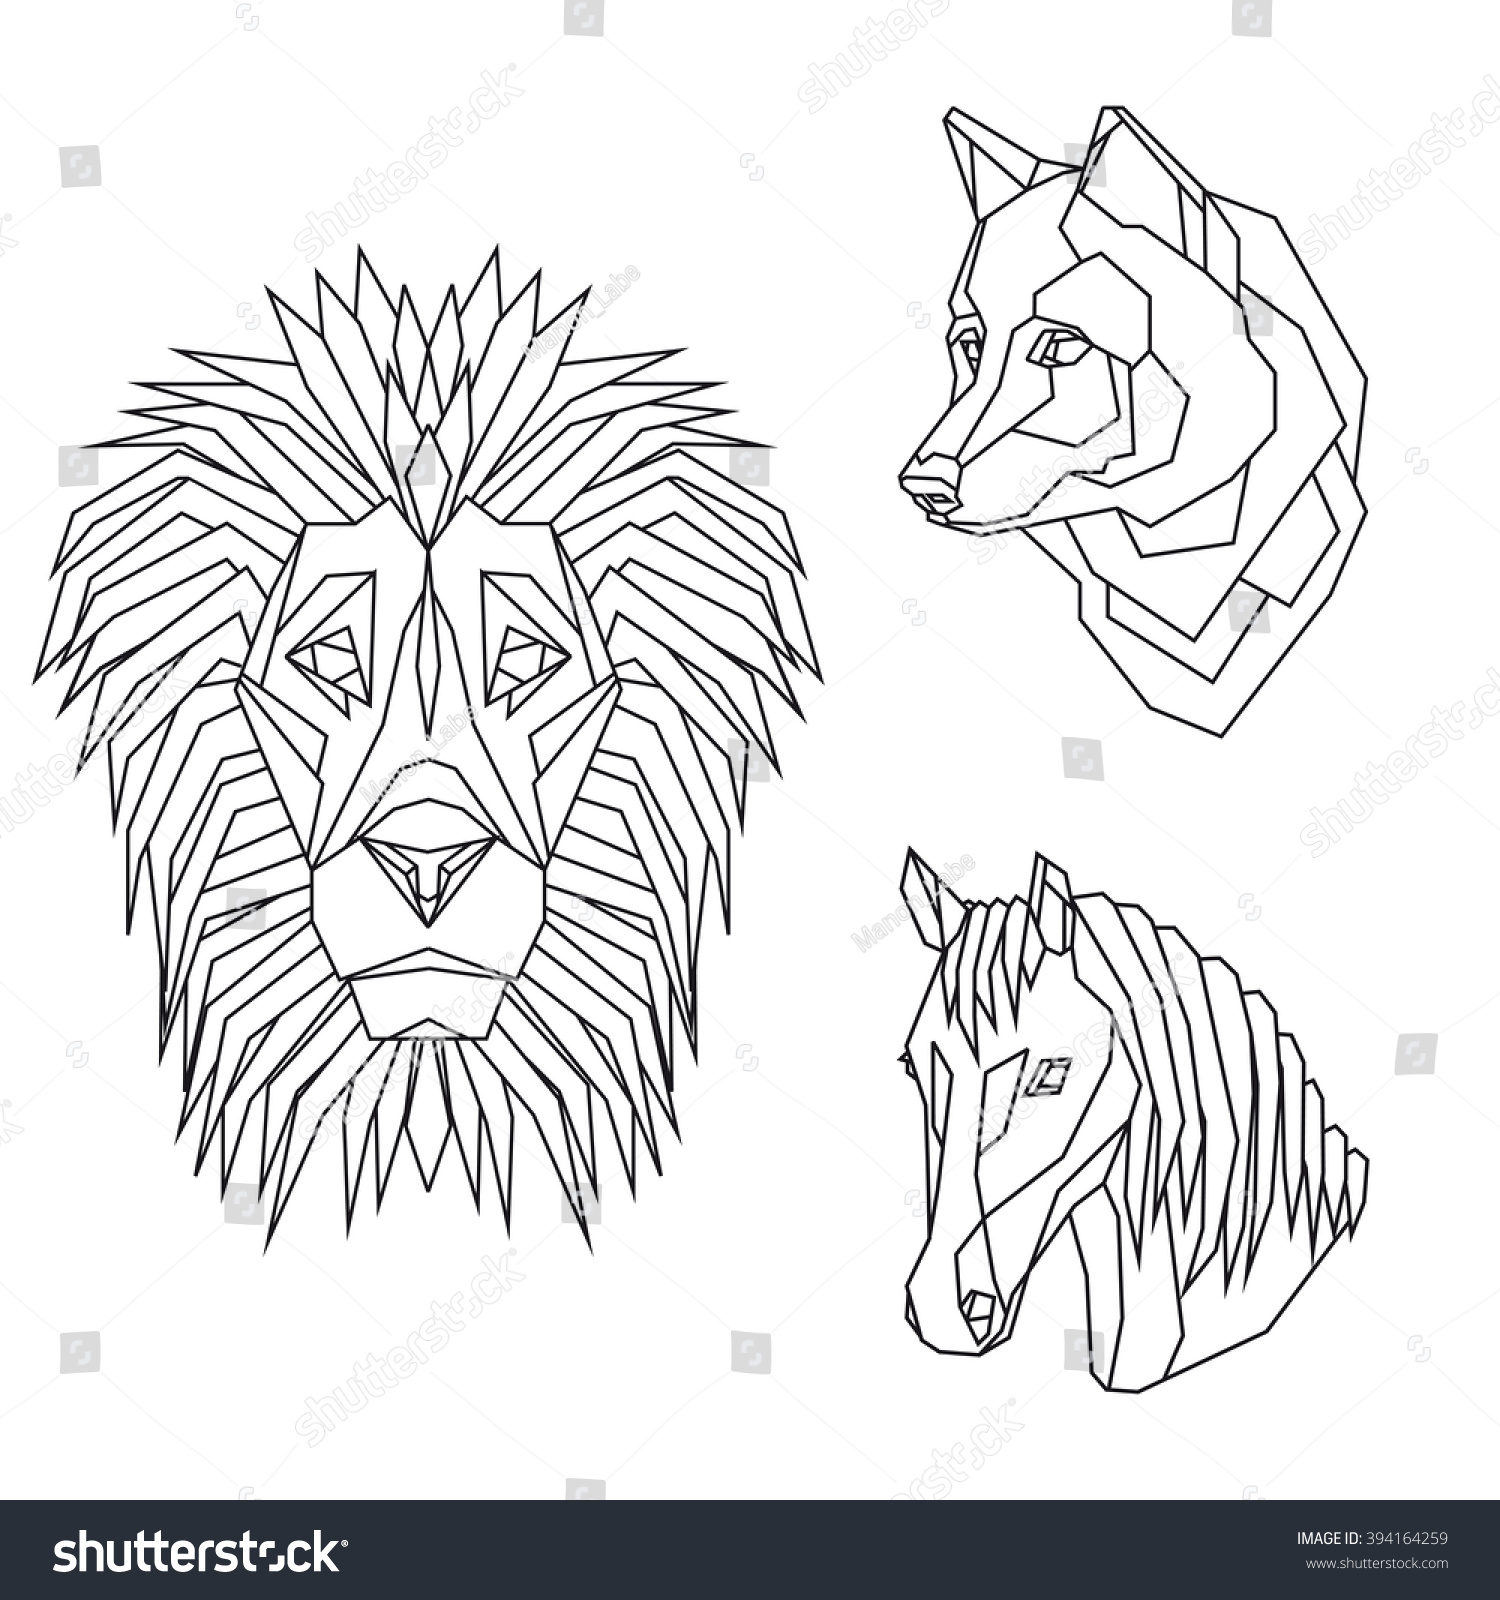 179d6e687 Geometric vector set with animal heads of lion, wolf and horse, drawn in  line.